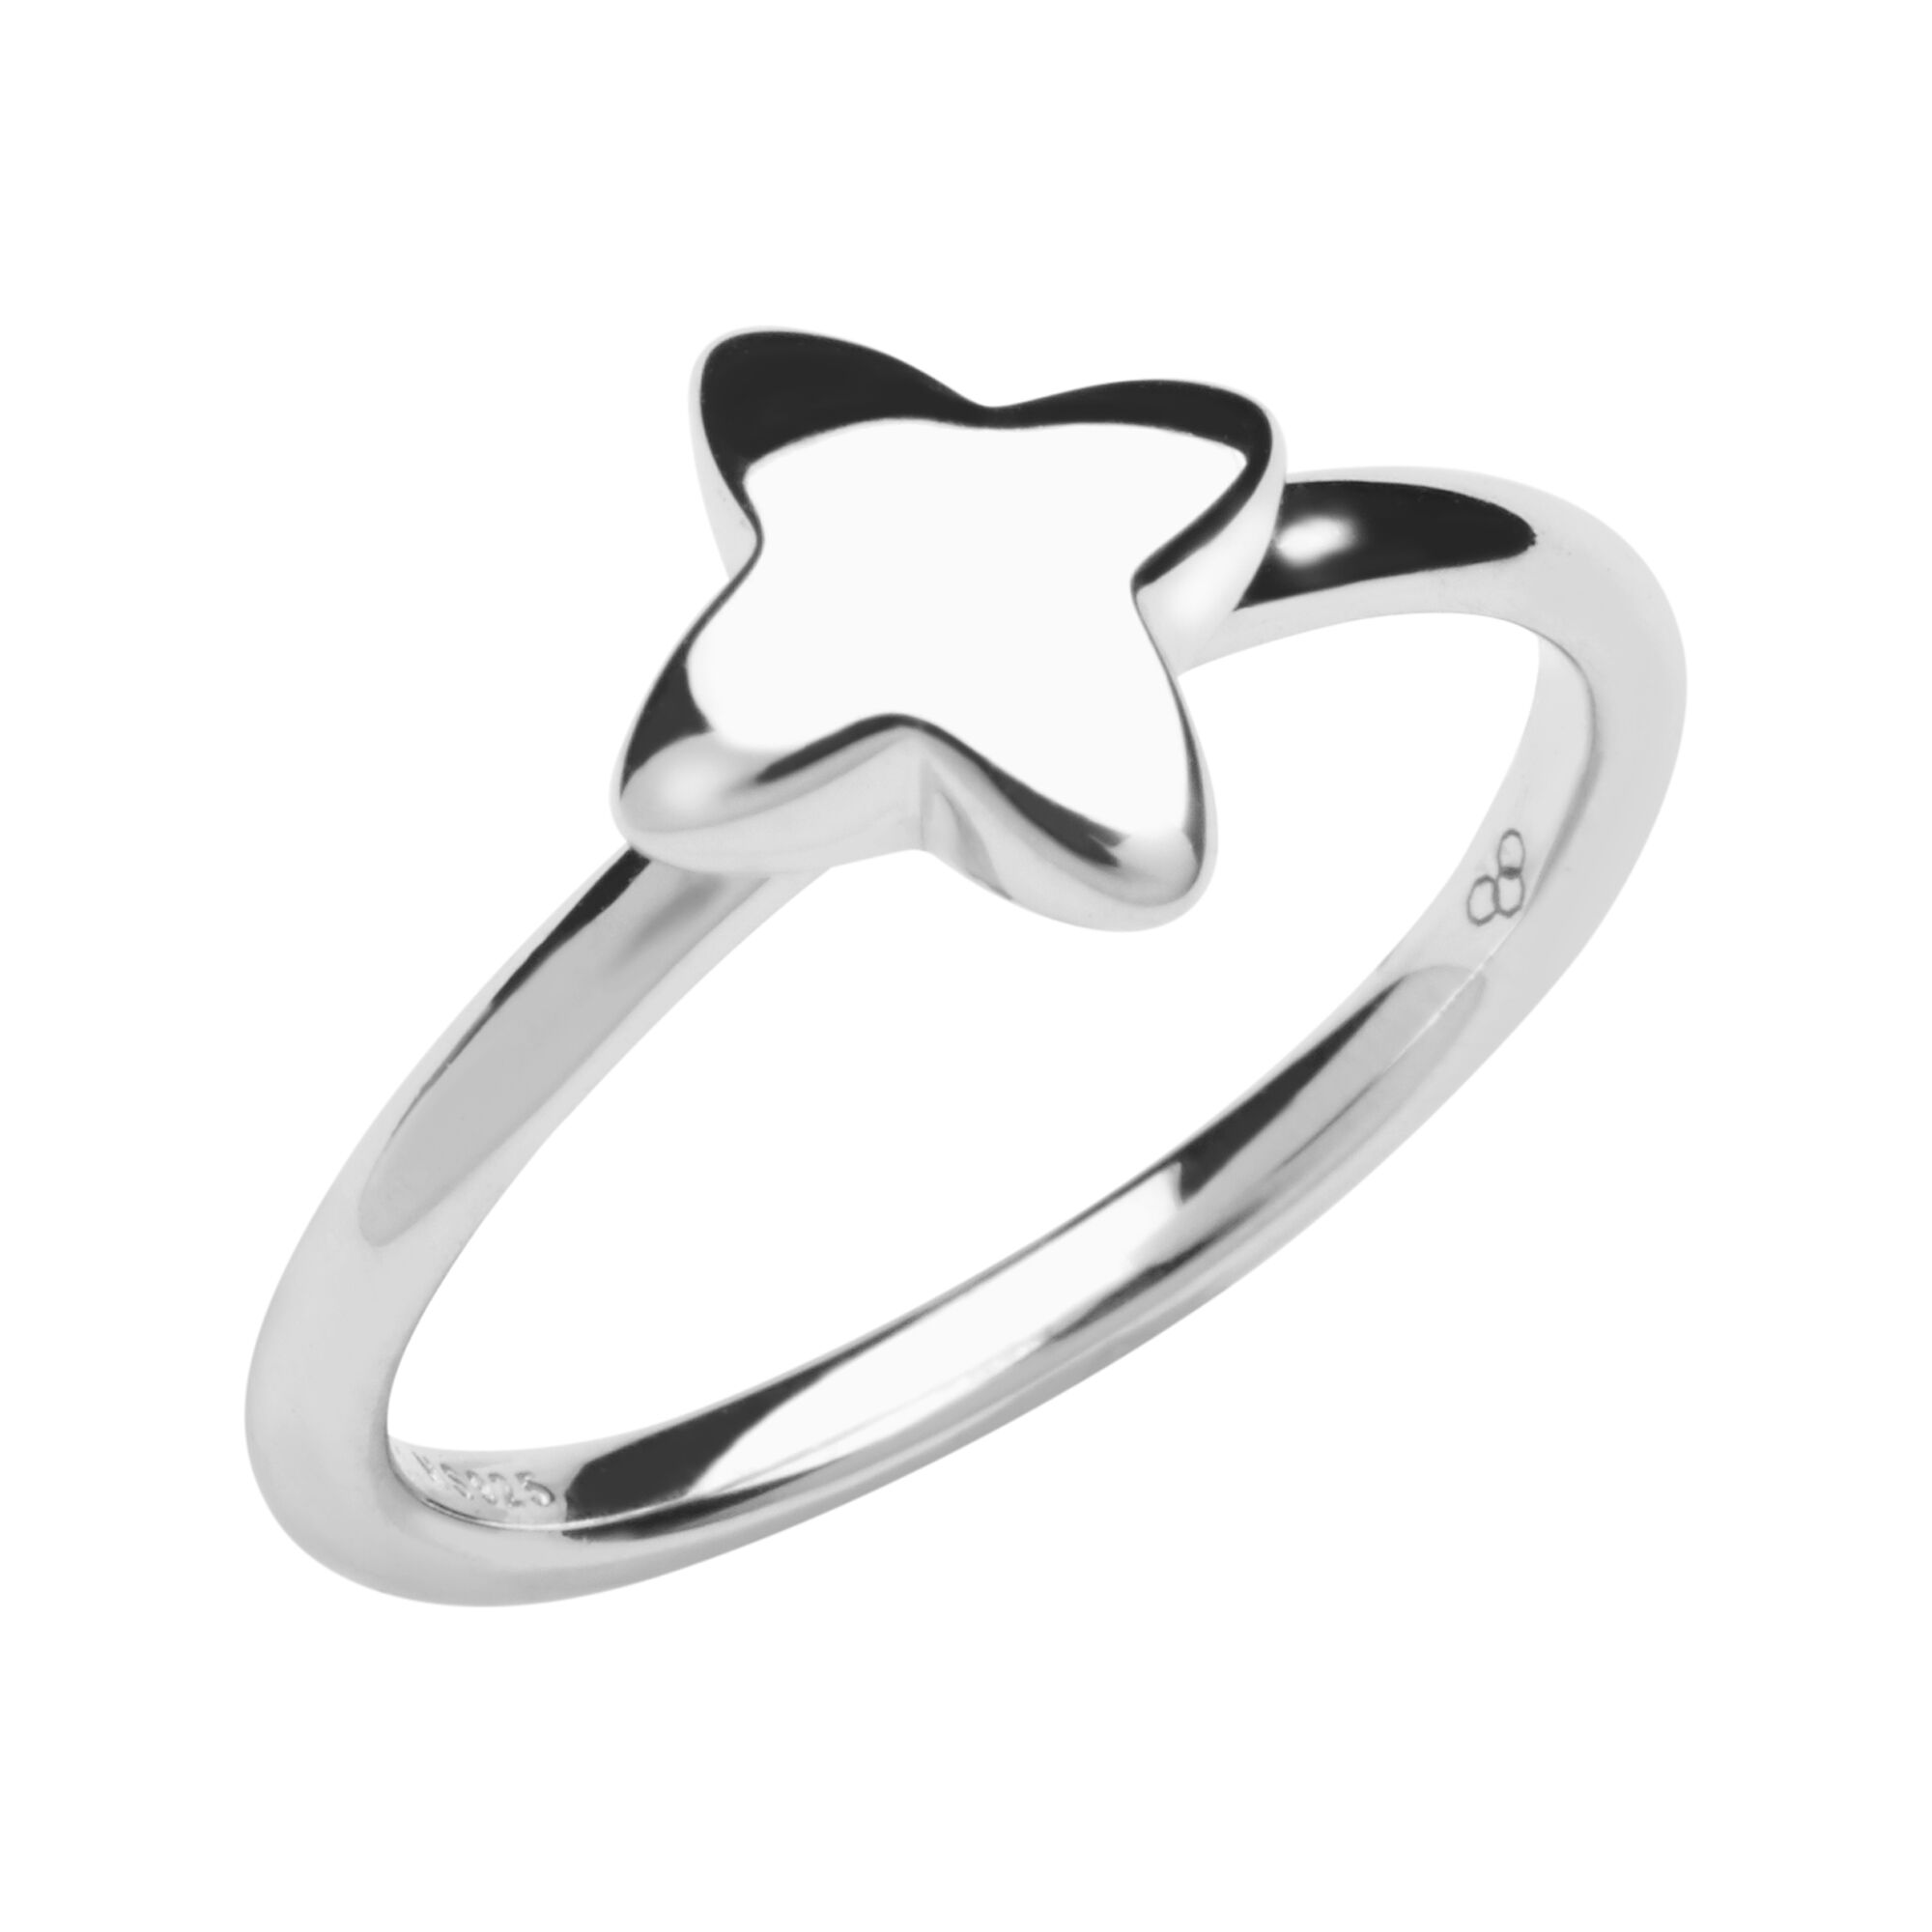 jewellery rings best lovely sisters sister engraved sterling ksvhs silver ring infinity